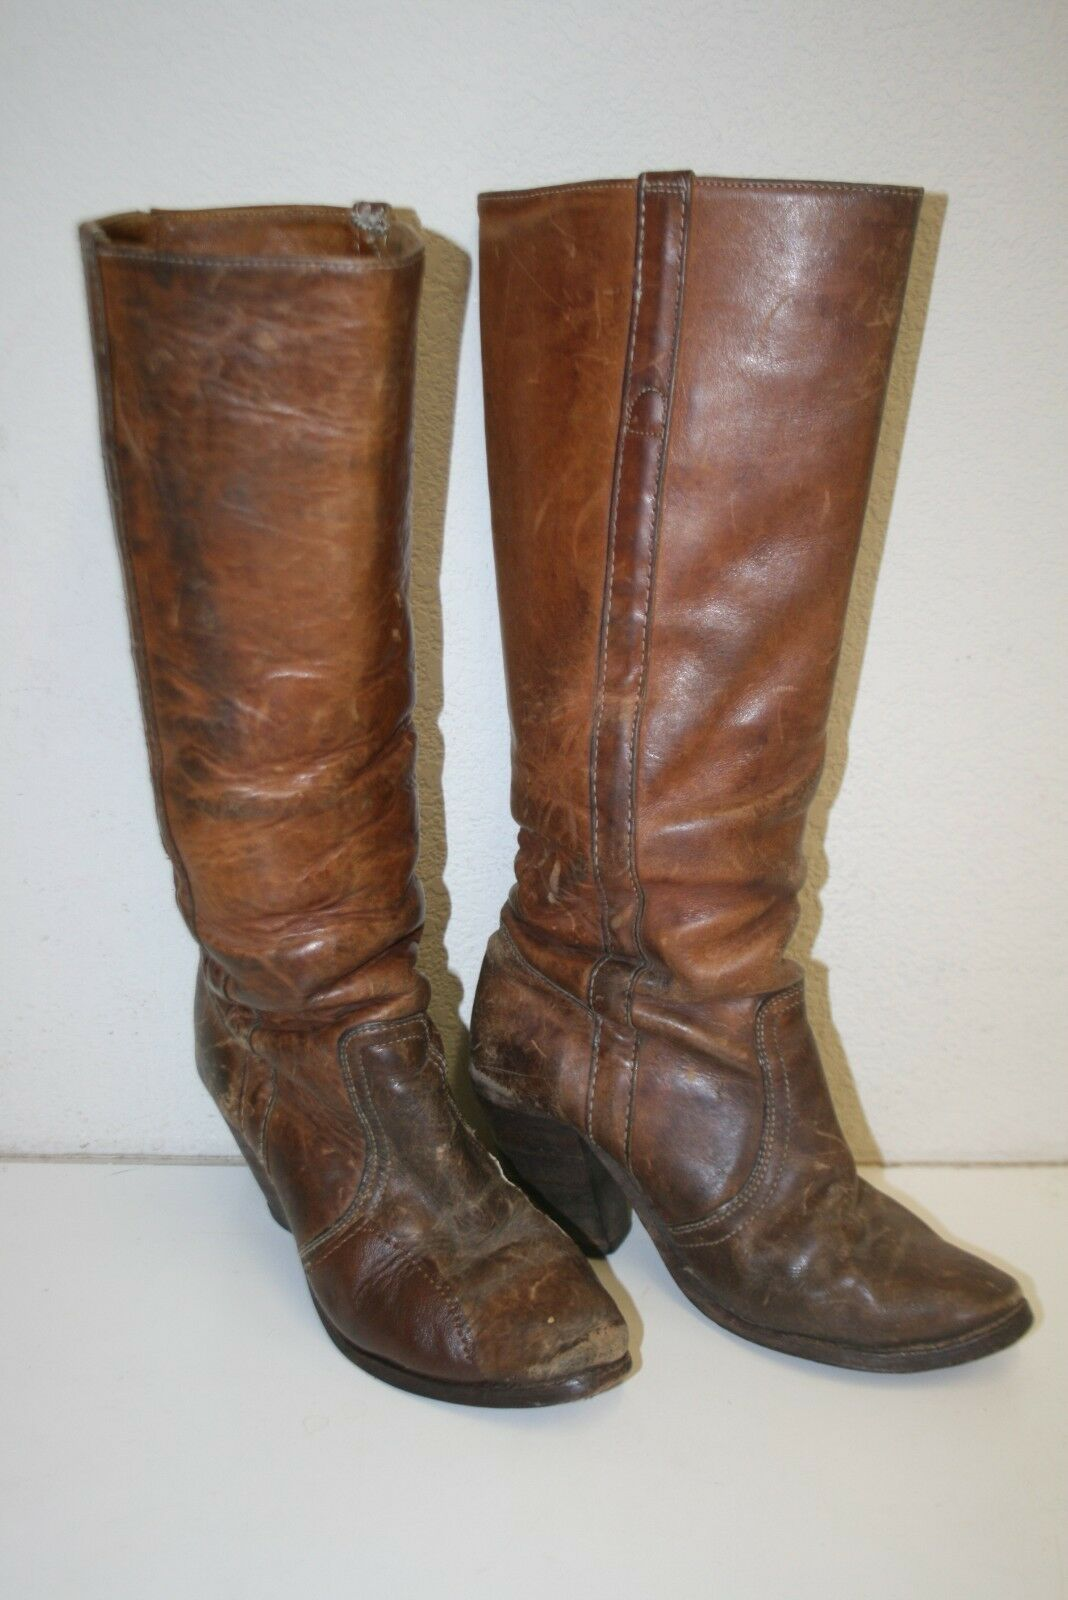 Vintage Leather Women's FRYE Size 7.5 Ranch Horse Riding Equestrian Cowboy Boots